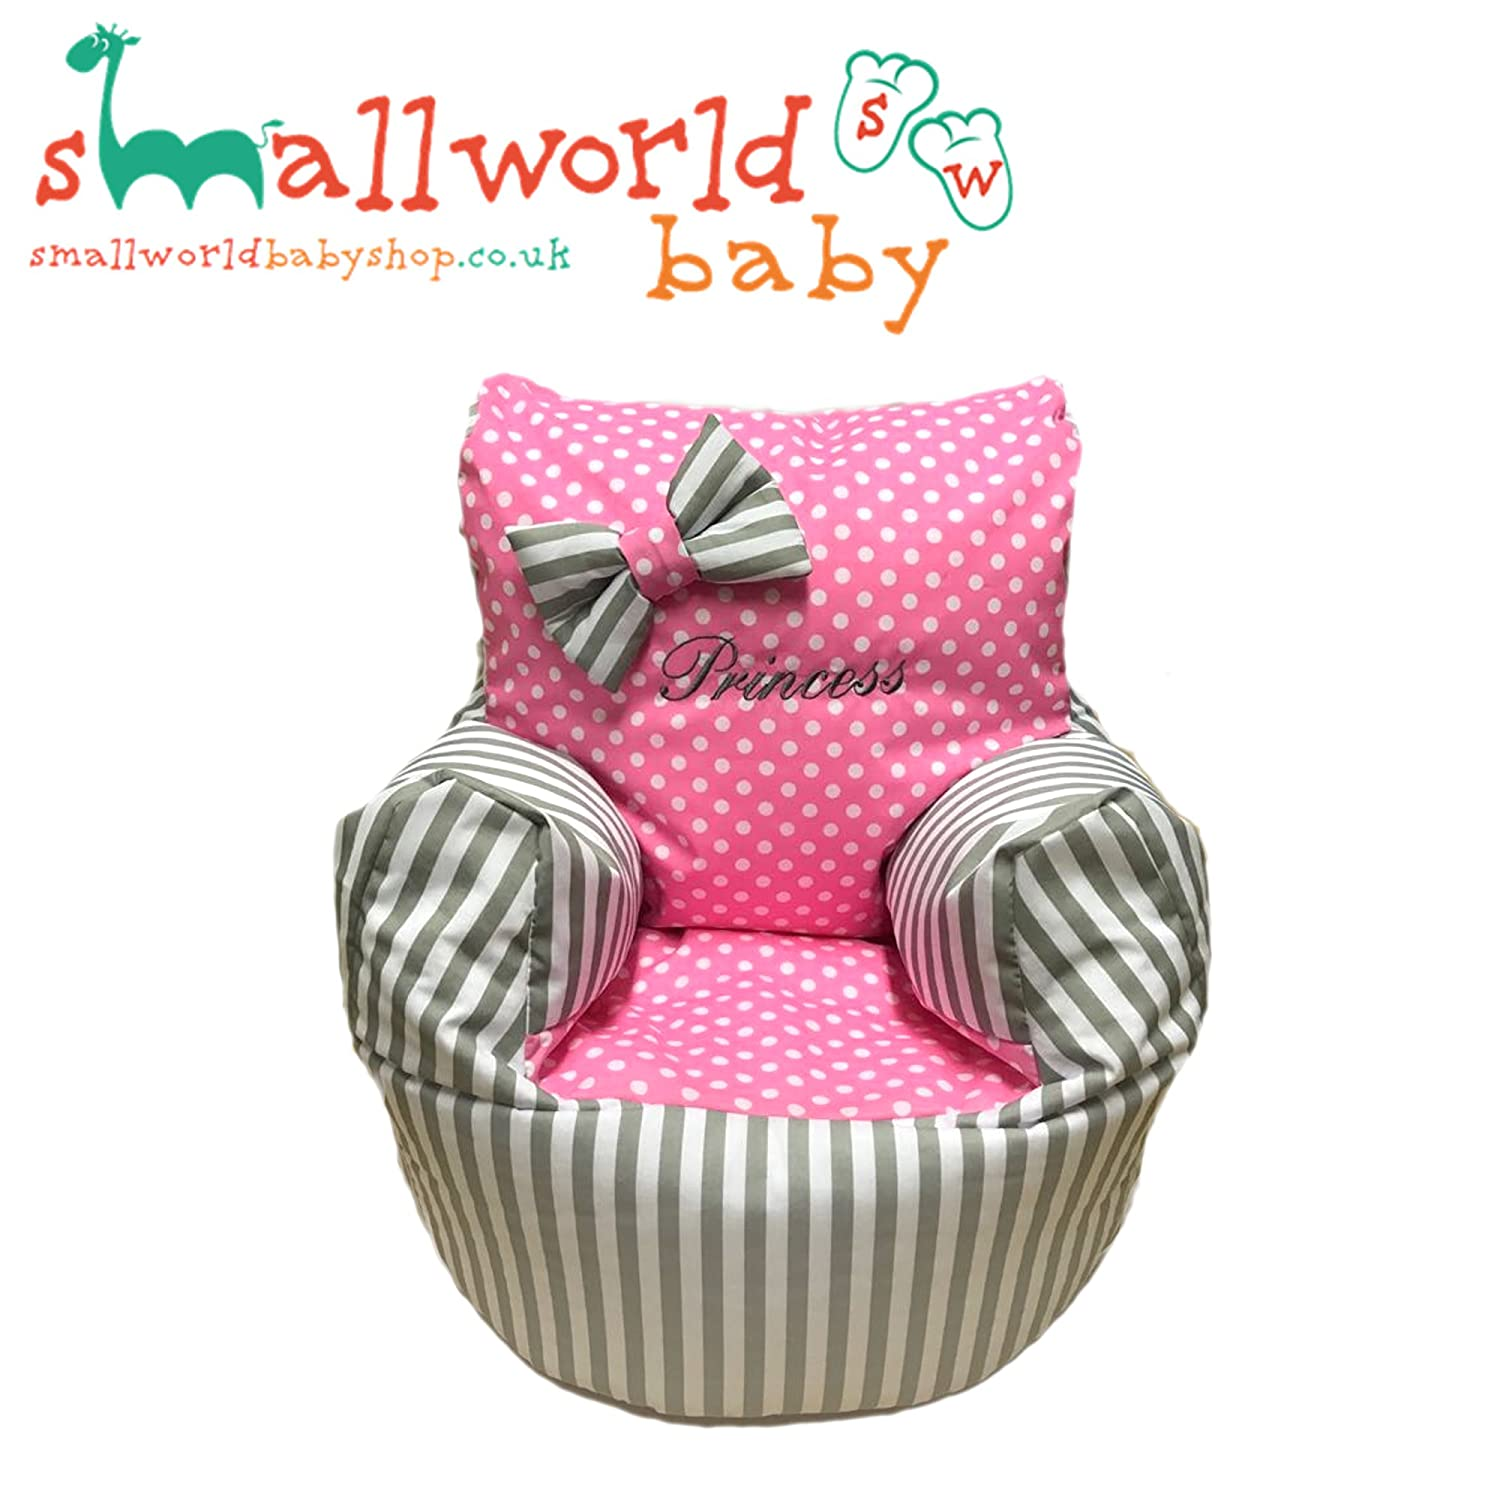 Puf personalizable, diseño de rayas y lunares, color gris y rosa Small World Baby Shop